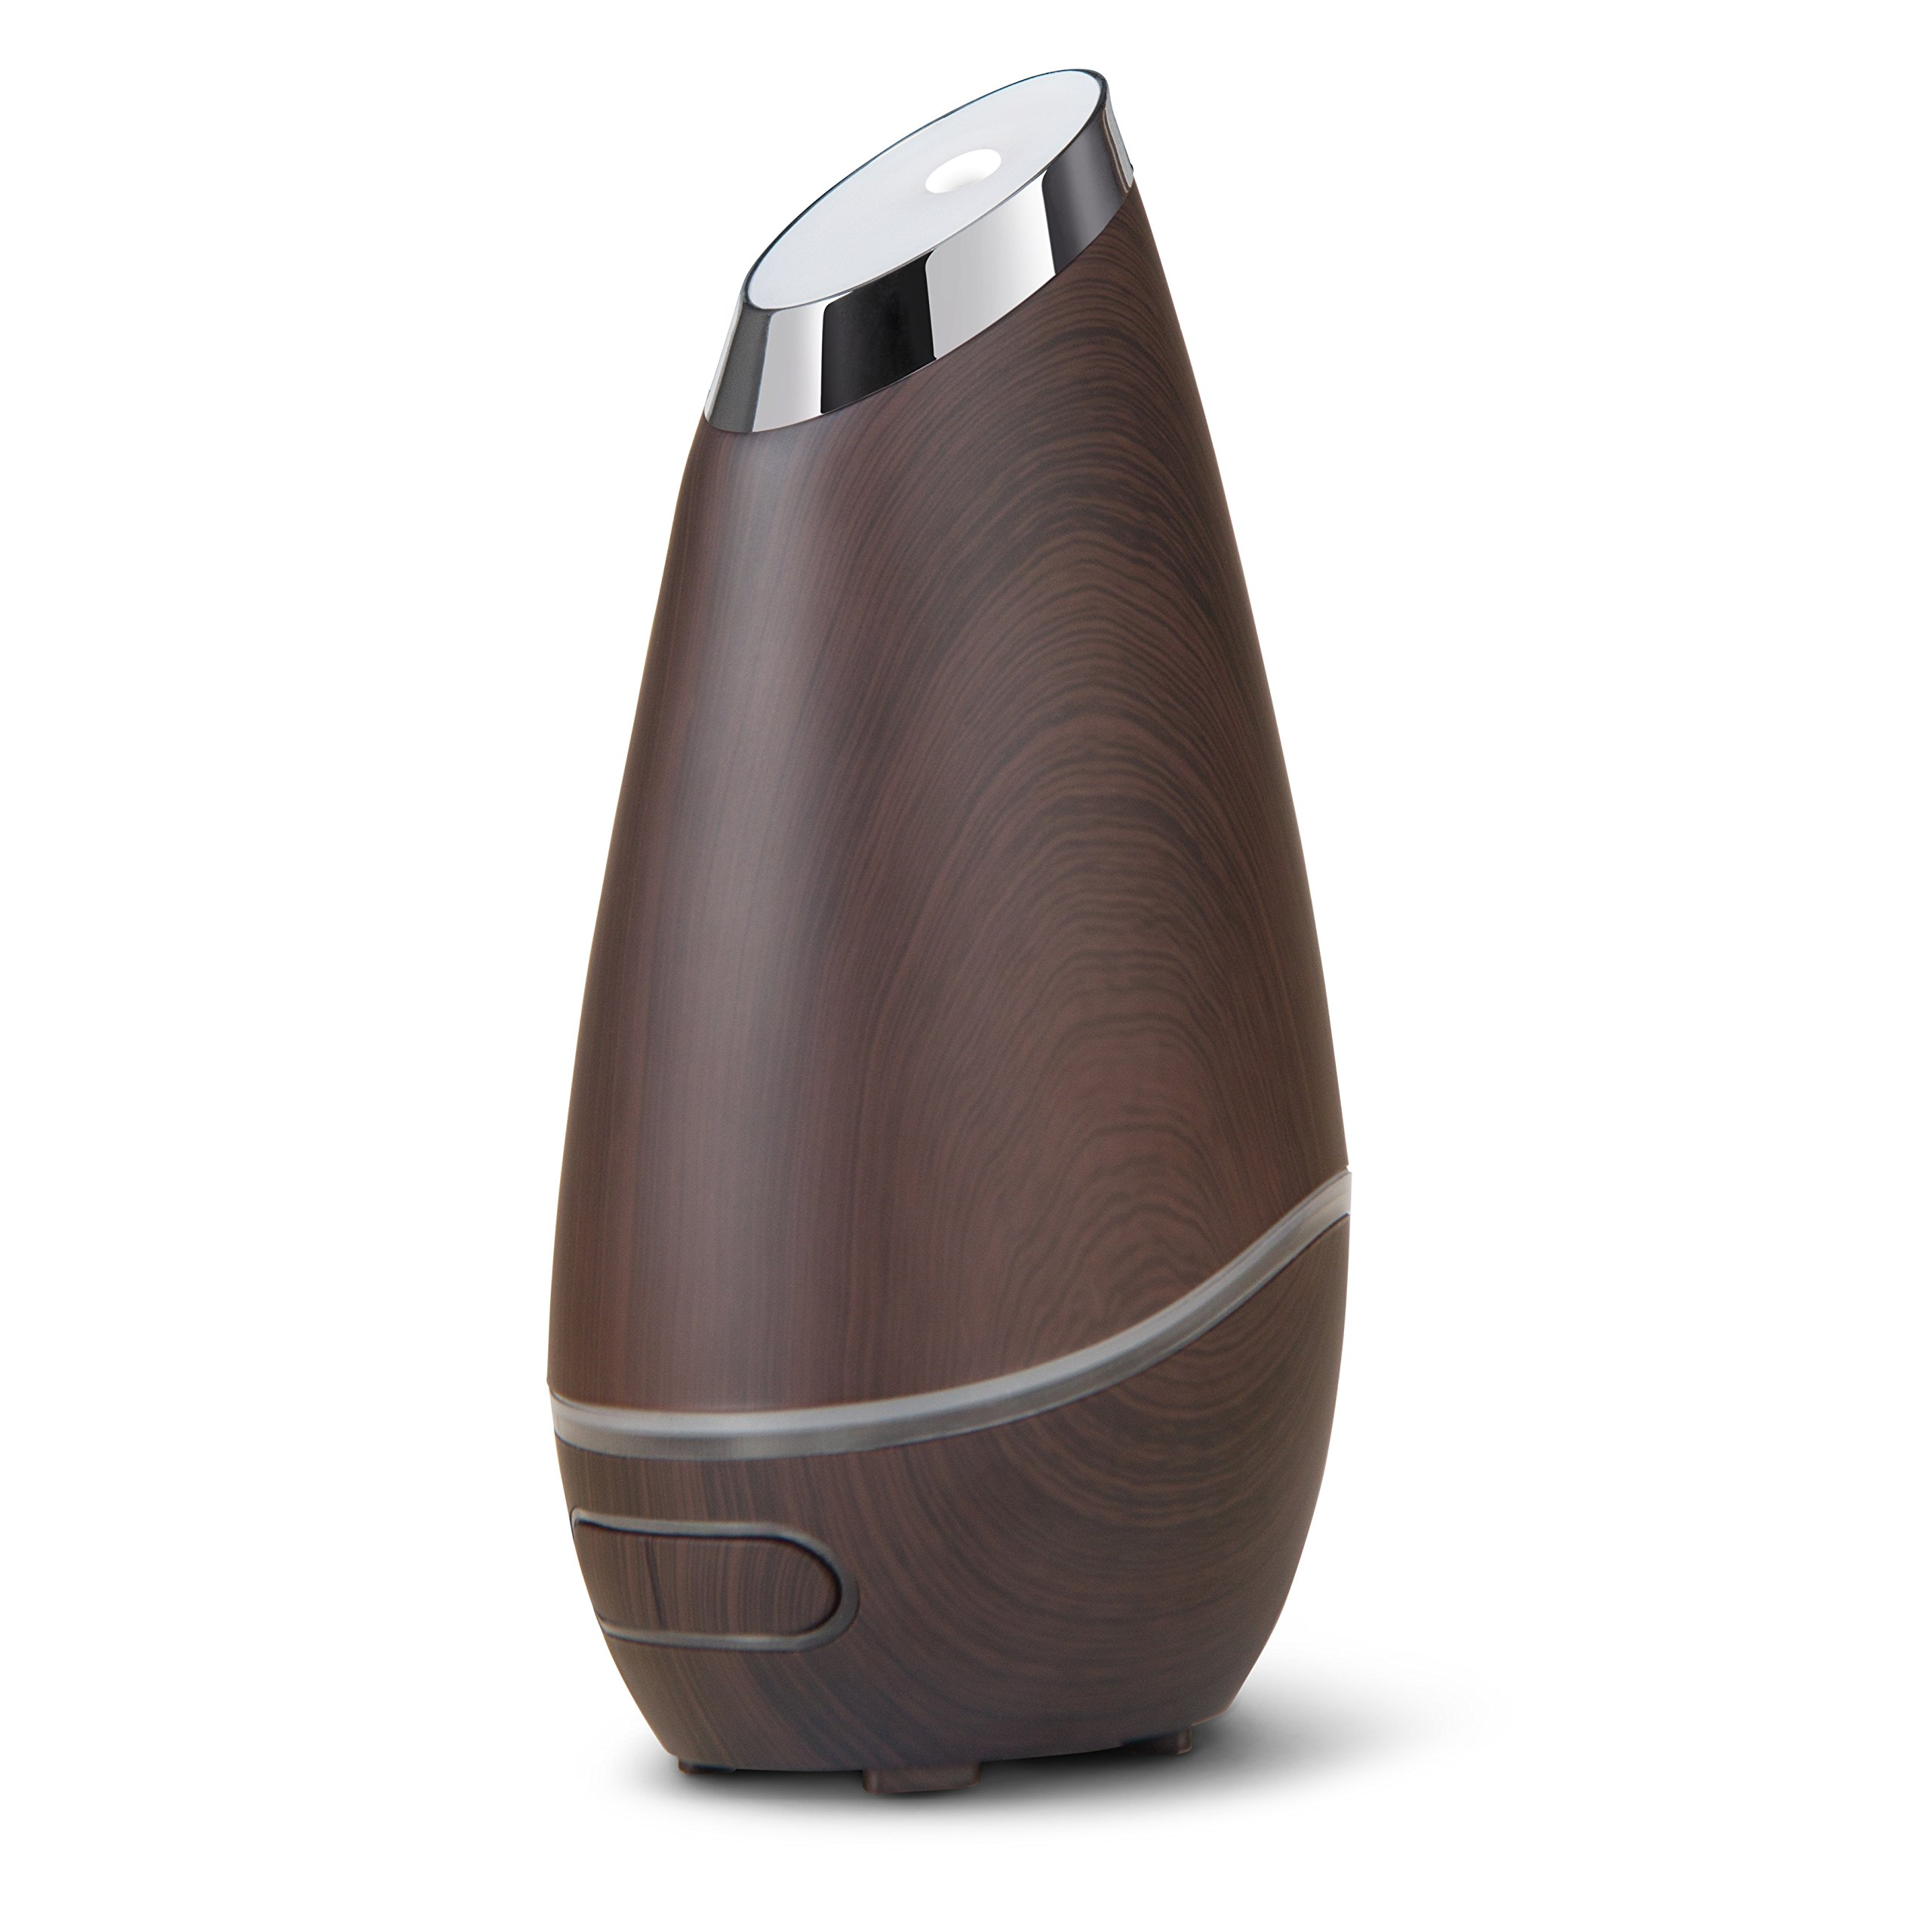 SmartMist Aromatherapy Essential Oil Diffuser - Modern Wood Finish, Auto Shut-off, LED Lights, 3 Mist Settings for Aroma - Ultrasonic Cool Air Purifier Humidifier for Room